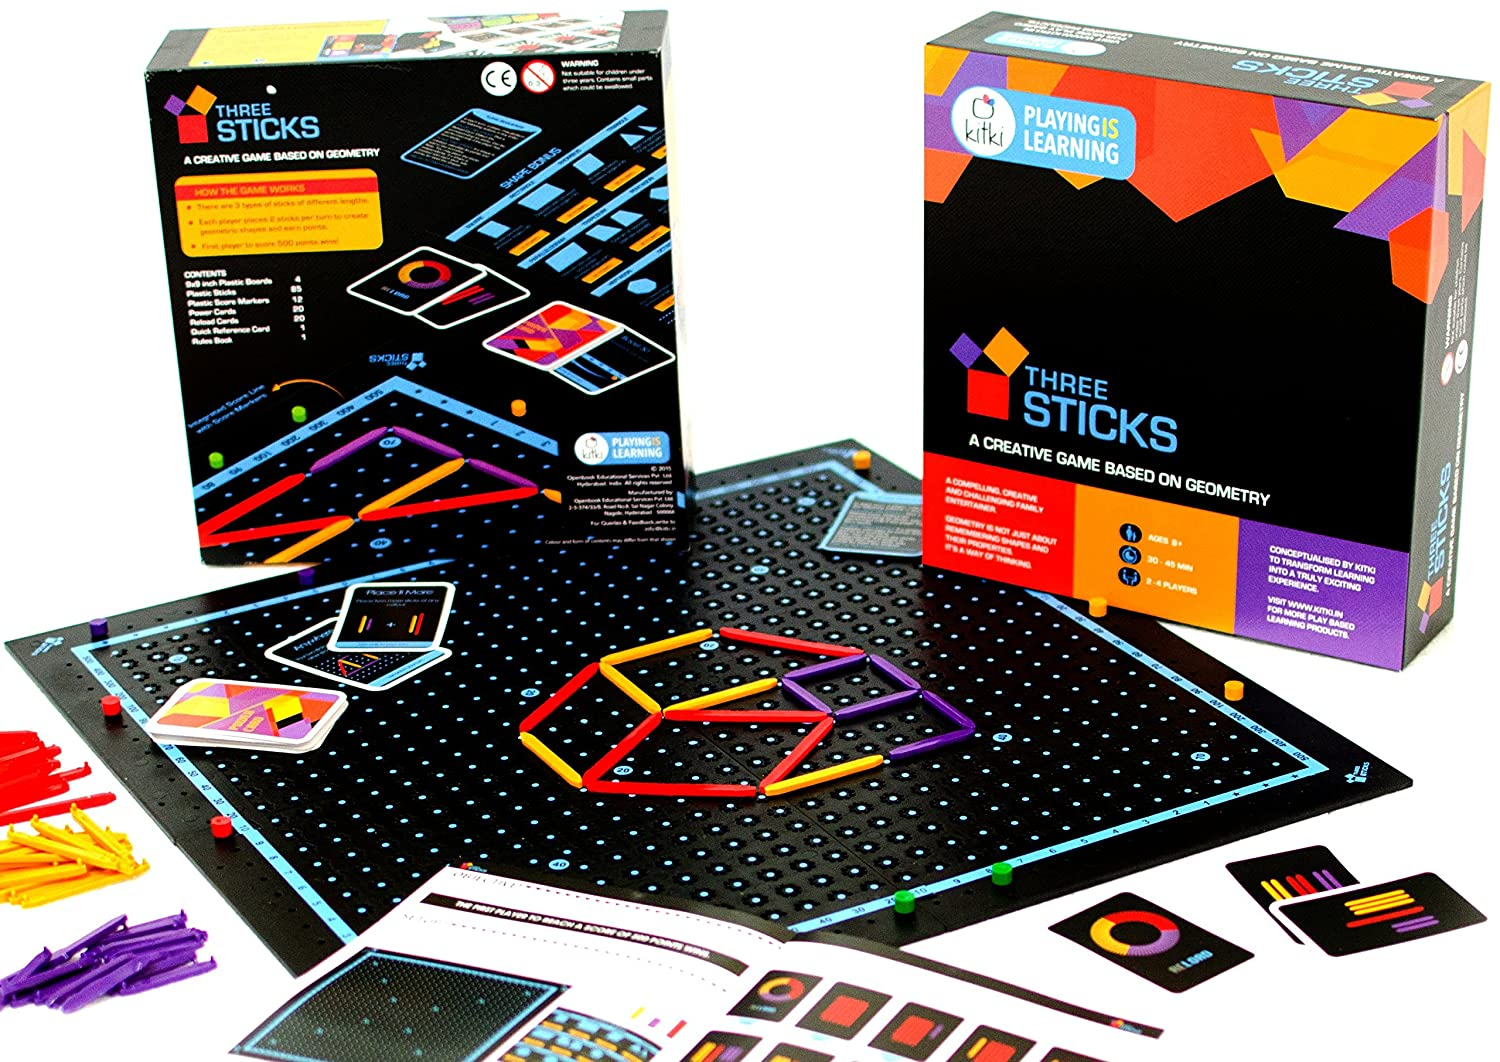 Creativity Toys For Boys : Three sticks math game educational games stem toys for